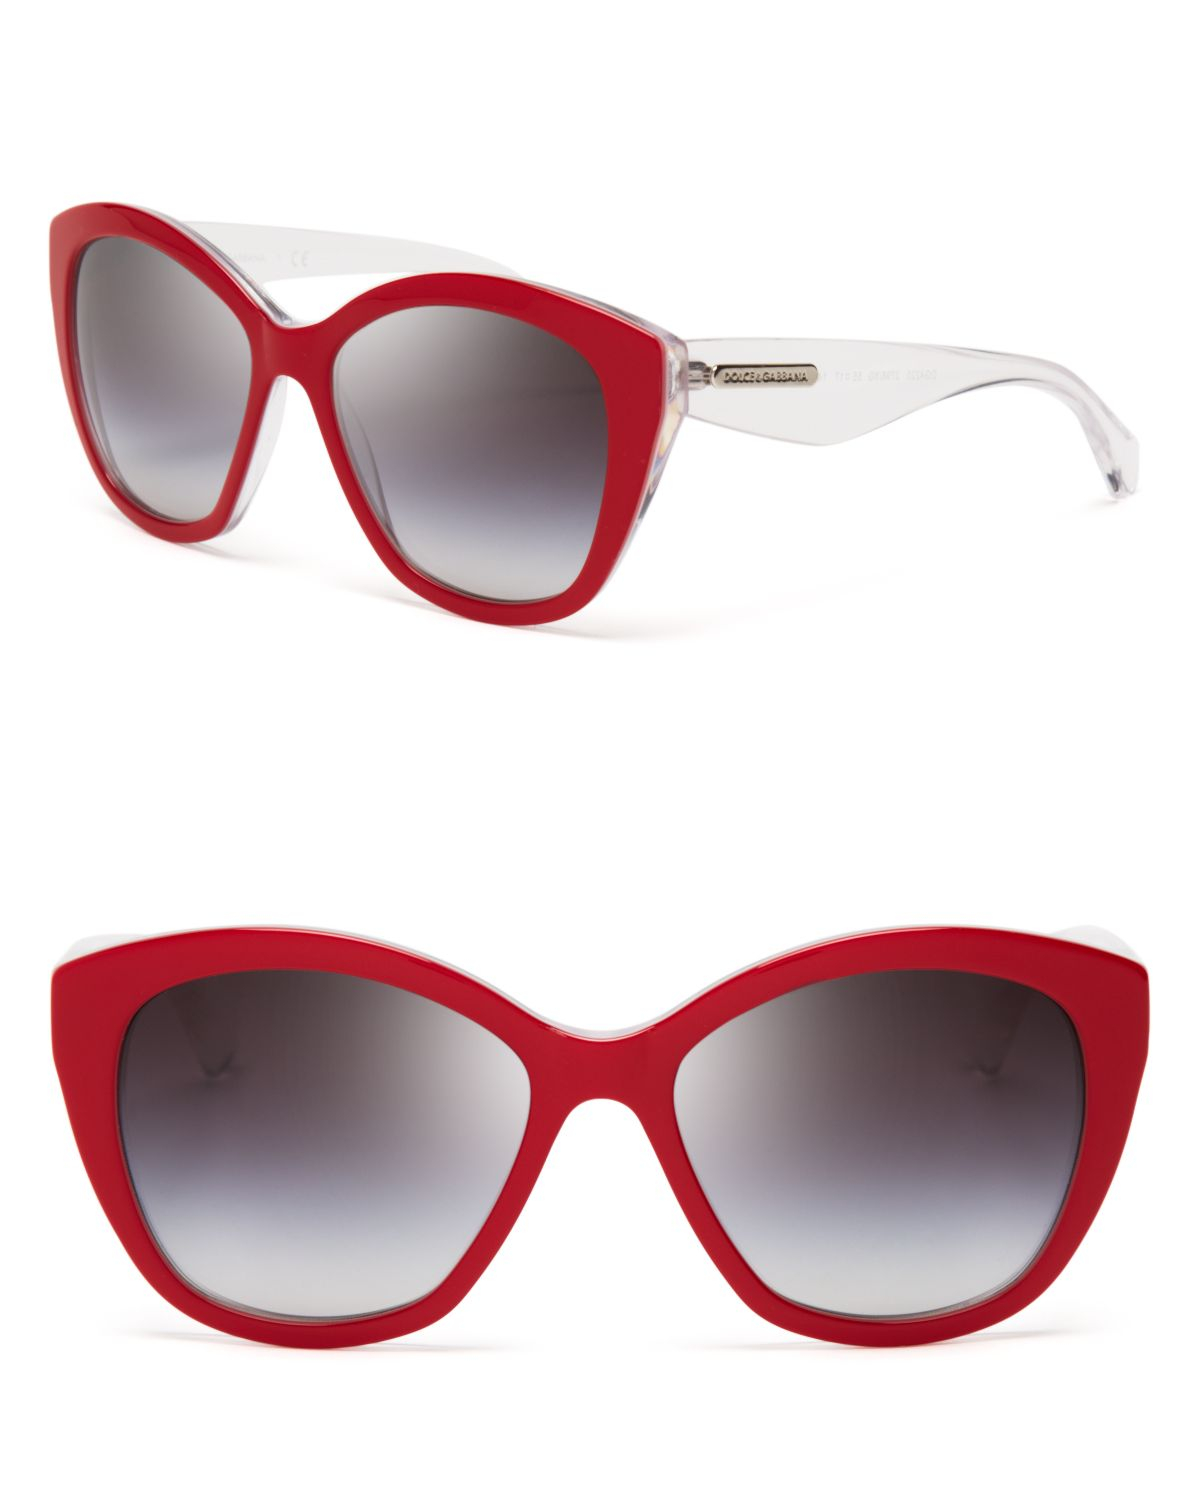 Dolce Gabbana Cat Eye Sunglasses  dolce gabbana cat eye sunglasses in red lyst